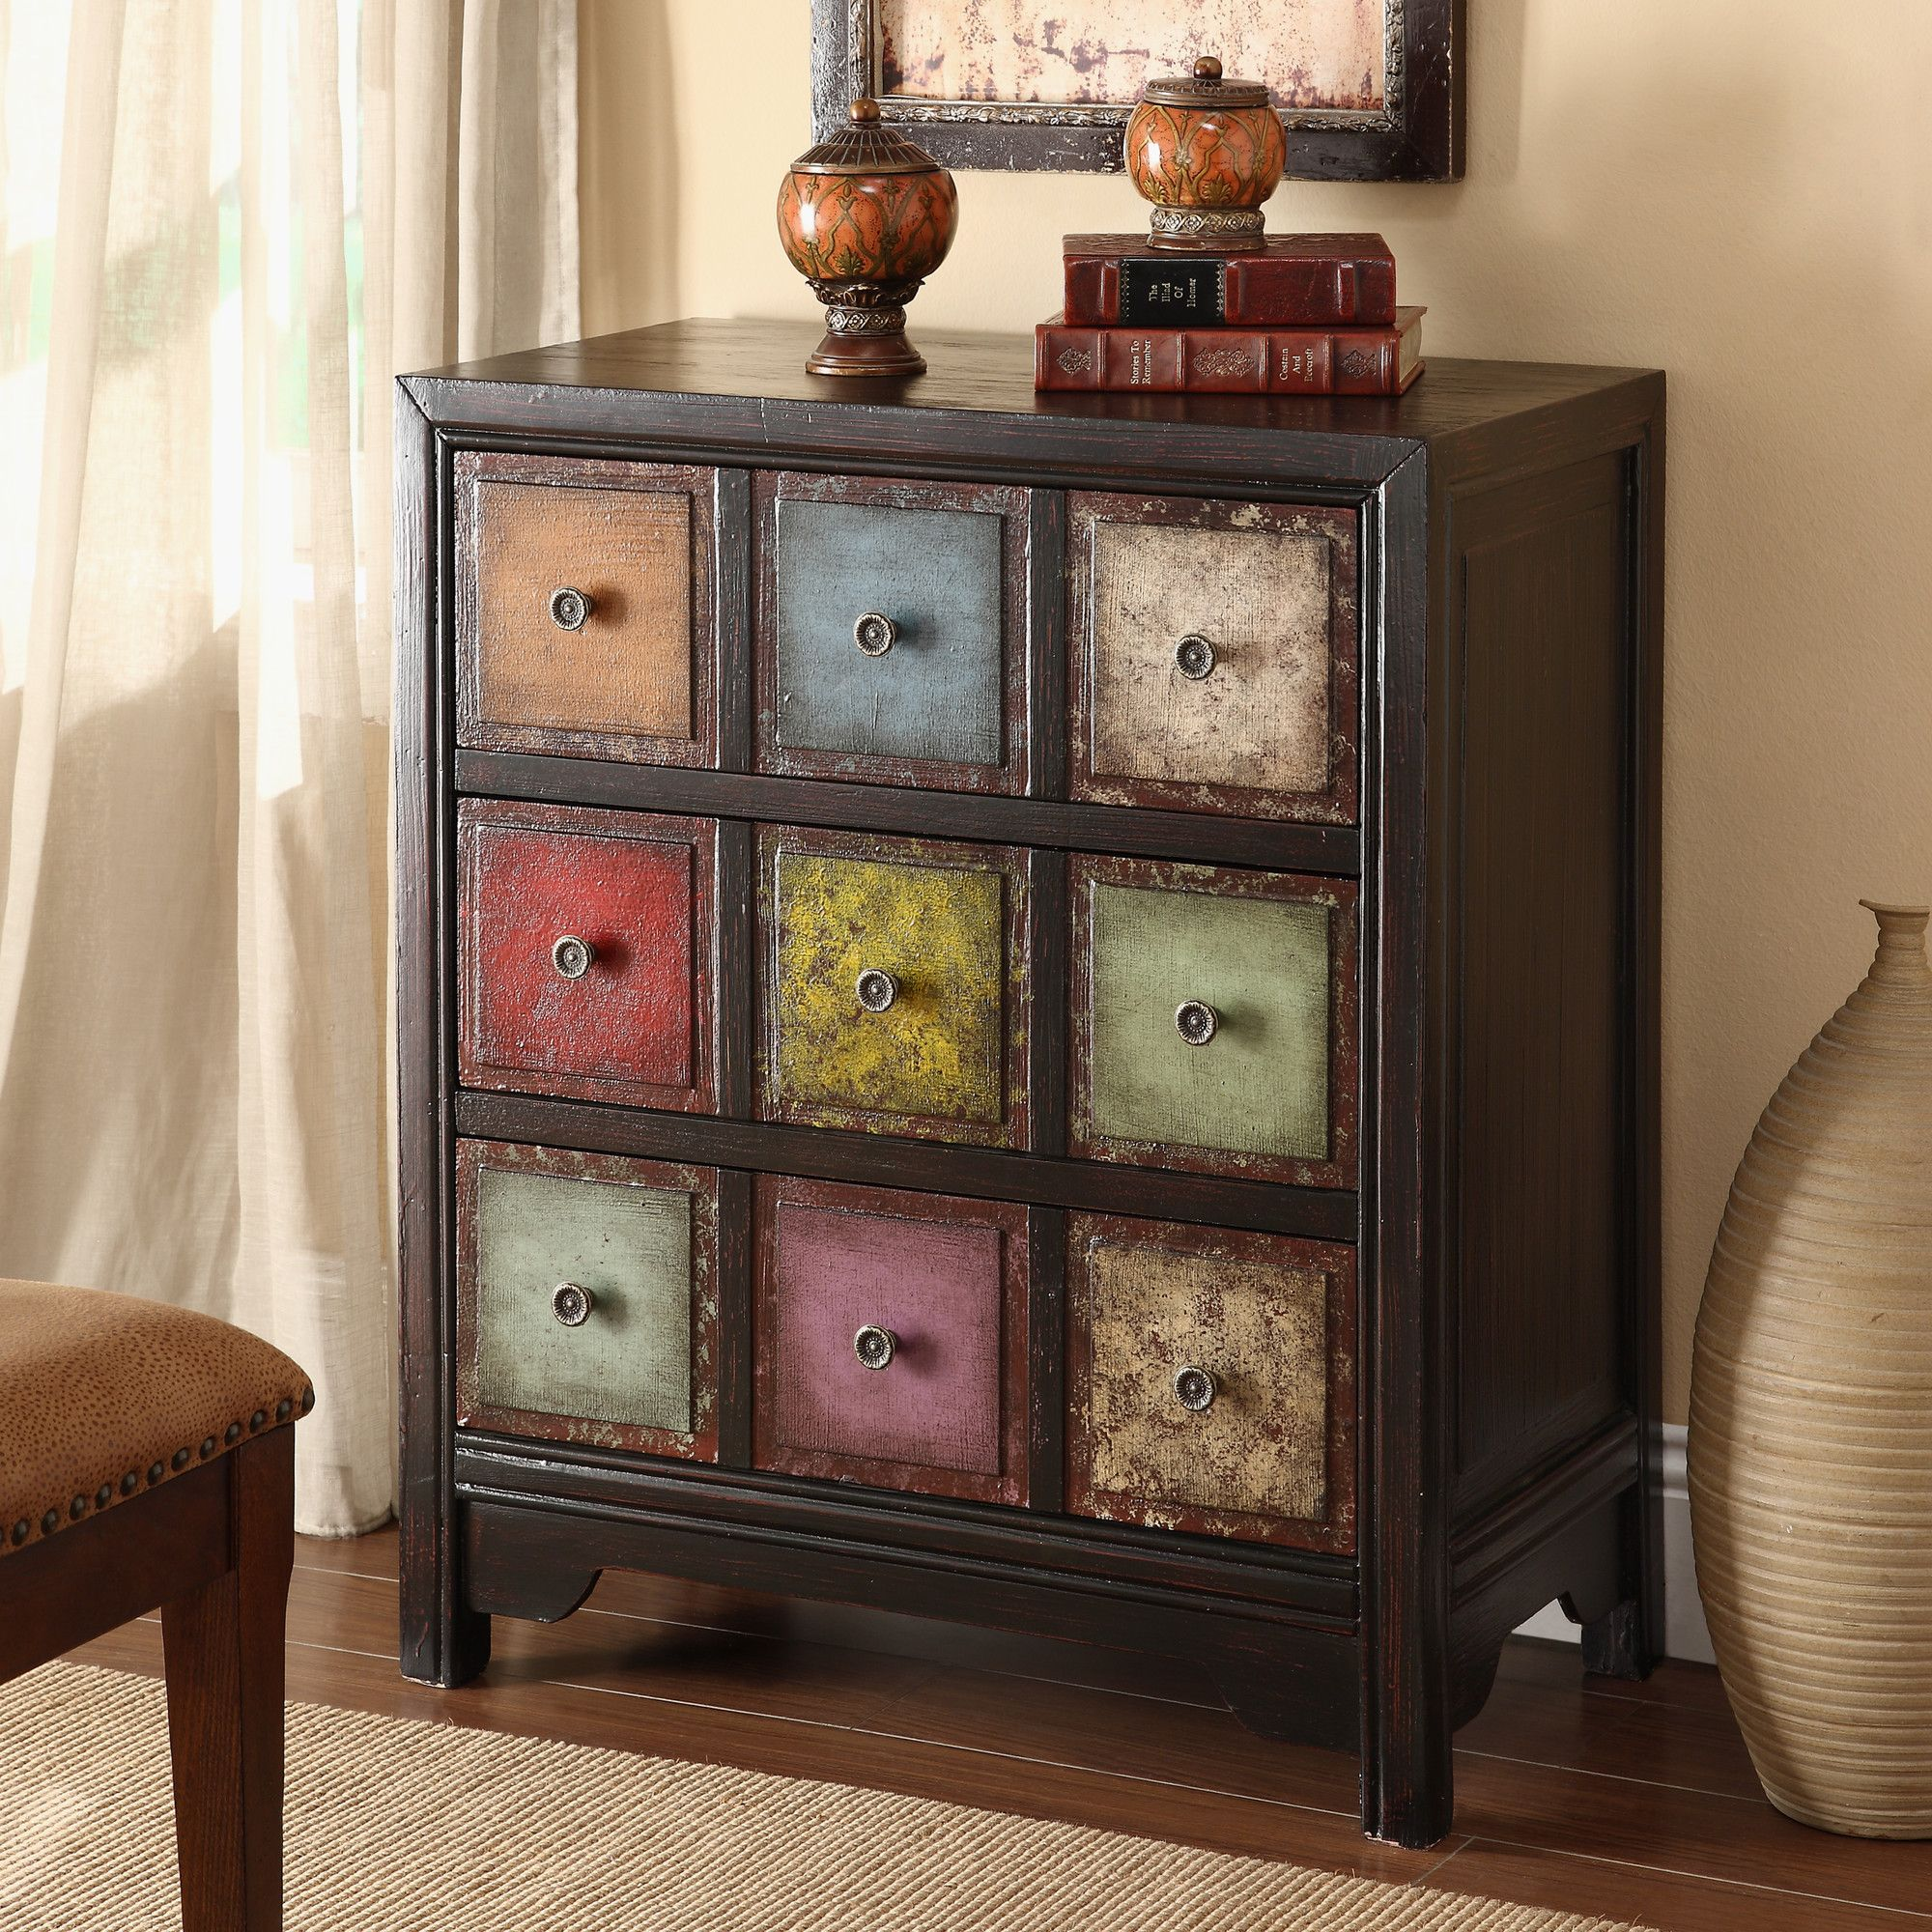 Coast To Coast Imports 3 Drawer Chest 420 Painted Furniture Funky Furniture Redo Furniture